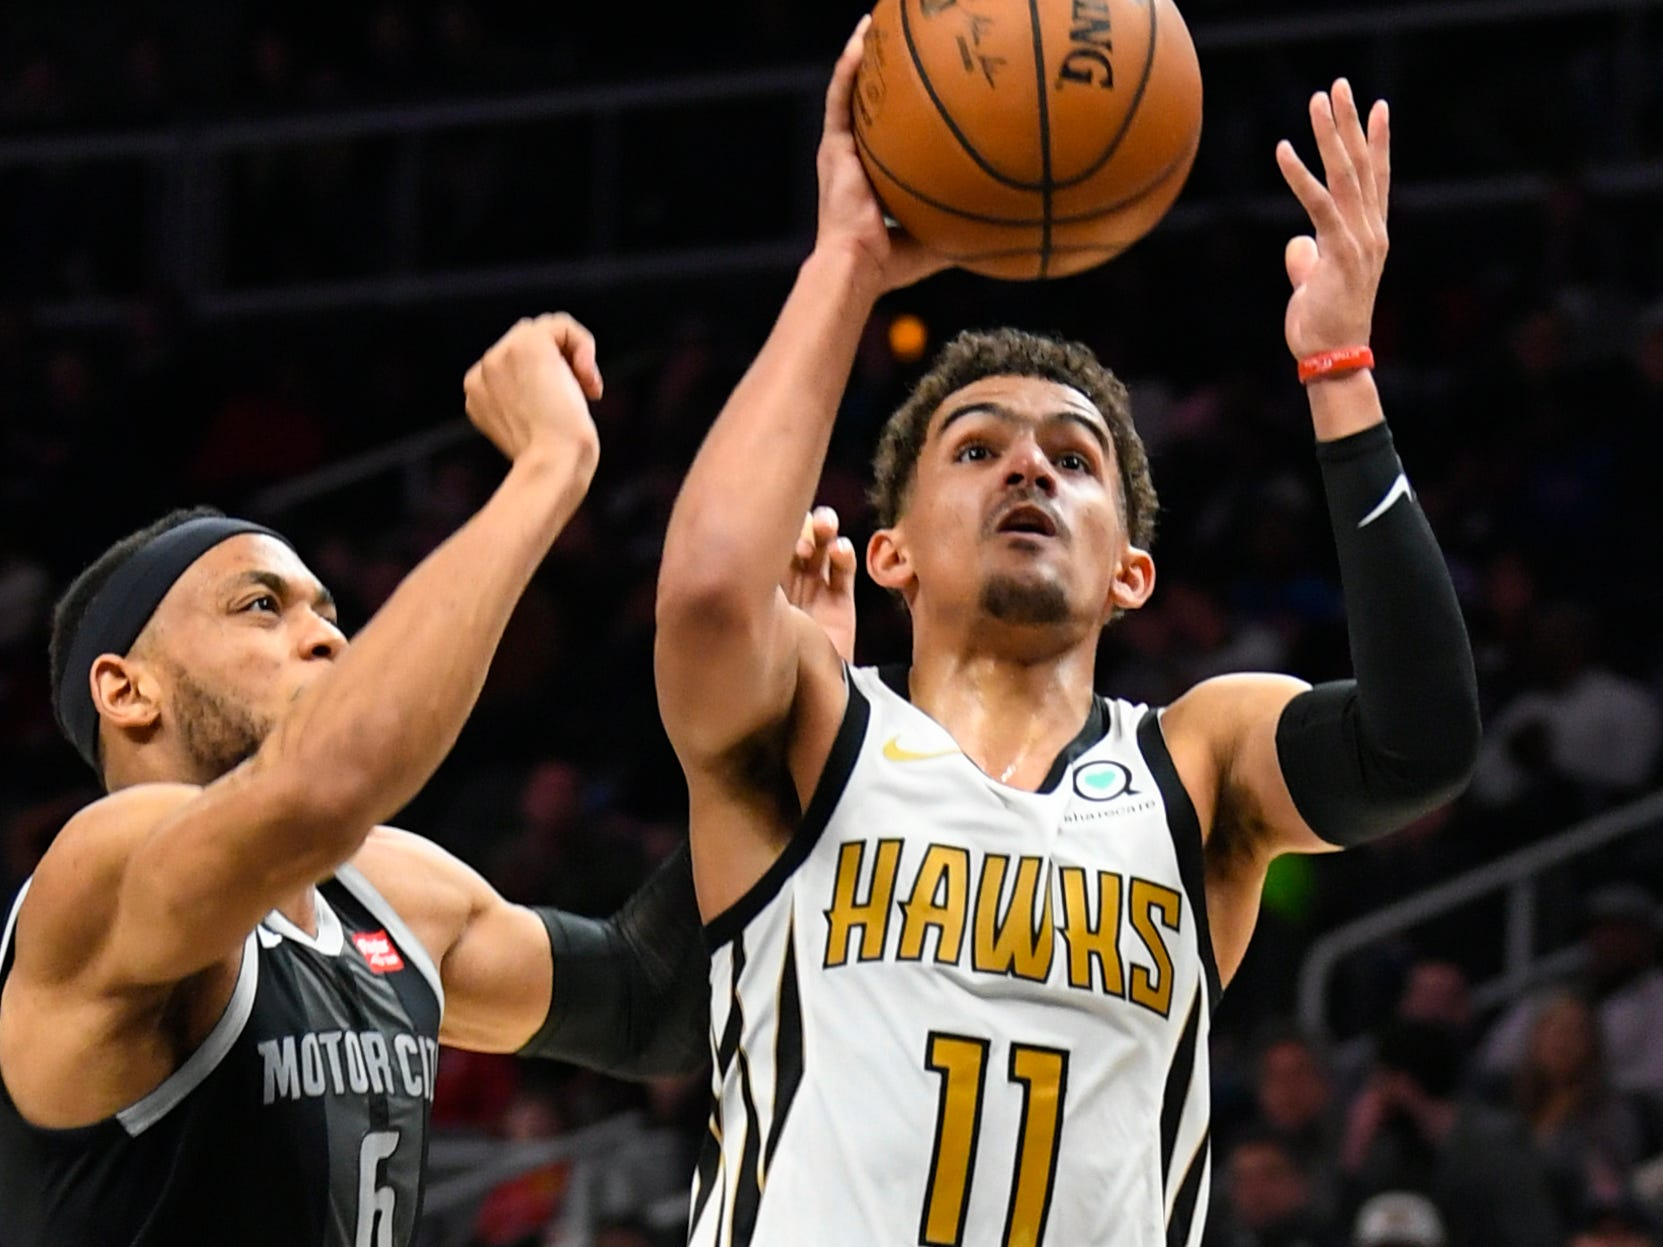 Atlanta Hawks guard Trae Young shoots as Detroit Pistons guard Bruce Brown (6) defends during the first half of an NBA basketball game Friday, Feb. 22, 2019, in Atlanta.